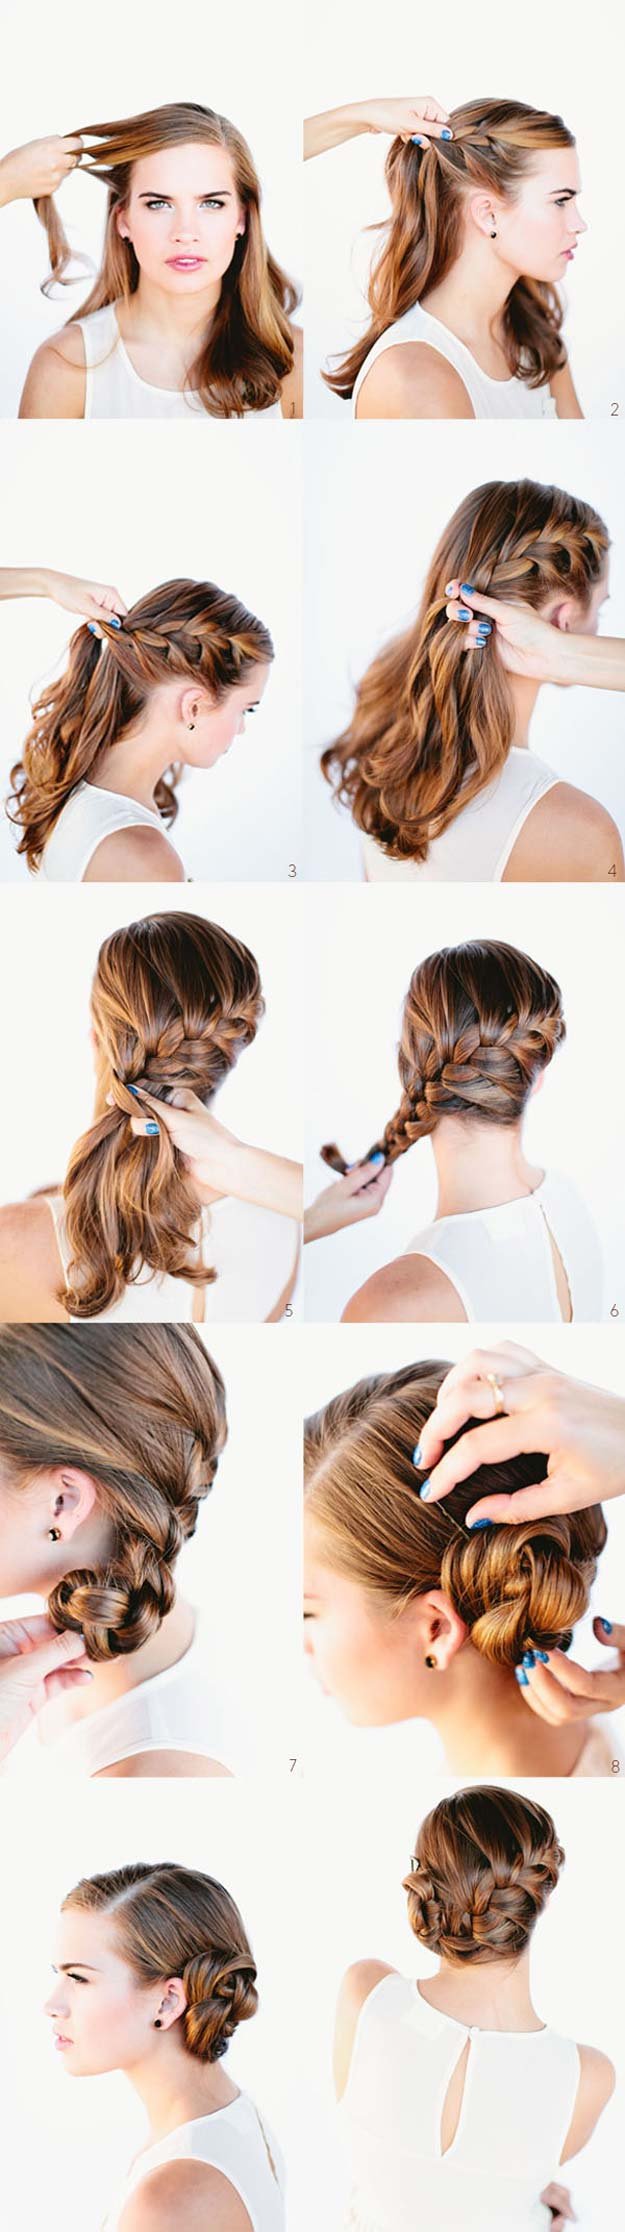 Best Hair Braiding Tutorials - French Braid Bun Tutorial - Easy Step by Step Tutorials for Braids - How To Braid Fishtail, French Braids, Flower Crown, Side Braids, Cornrows, Updos - Cool Braided Hairstyles for Girls, Teens and Women - School, Day and Evening, Boho, Casual and Formal Looks #hairstyles #braiding #braidingtutorials #diyhair